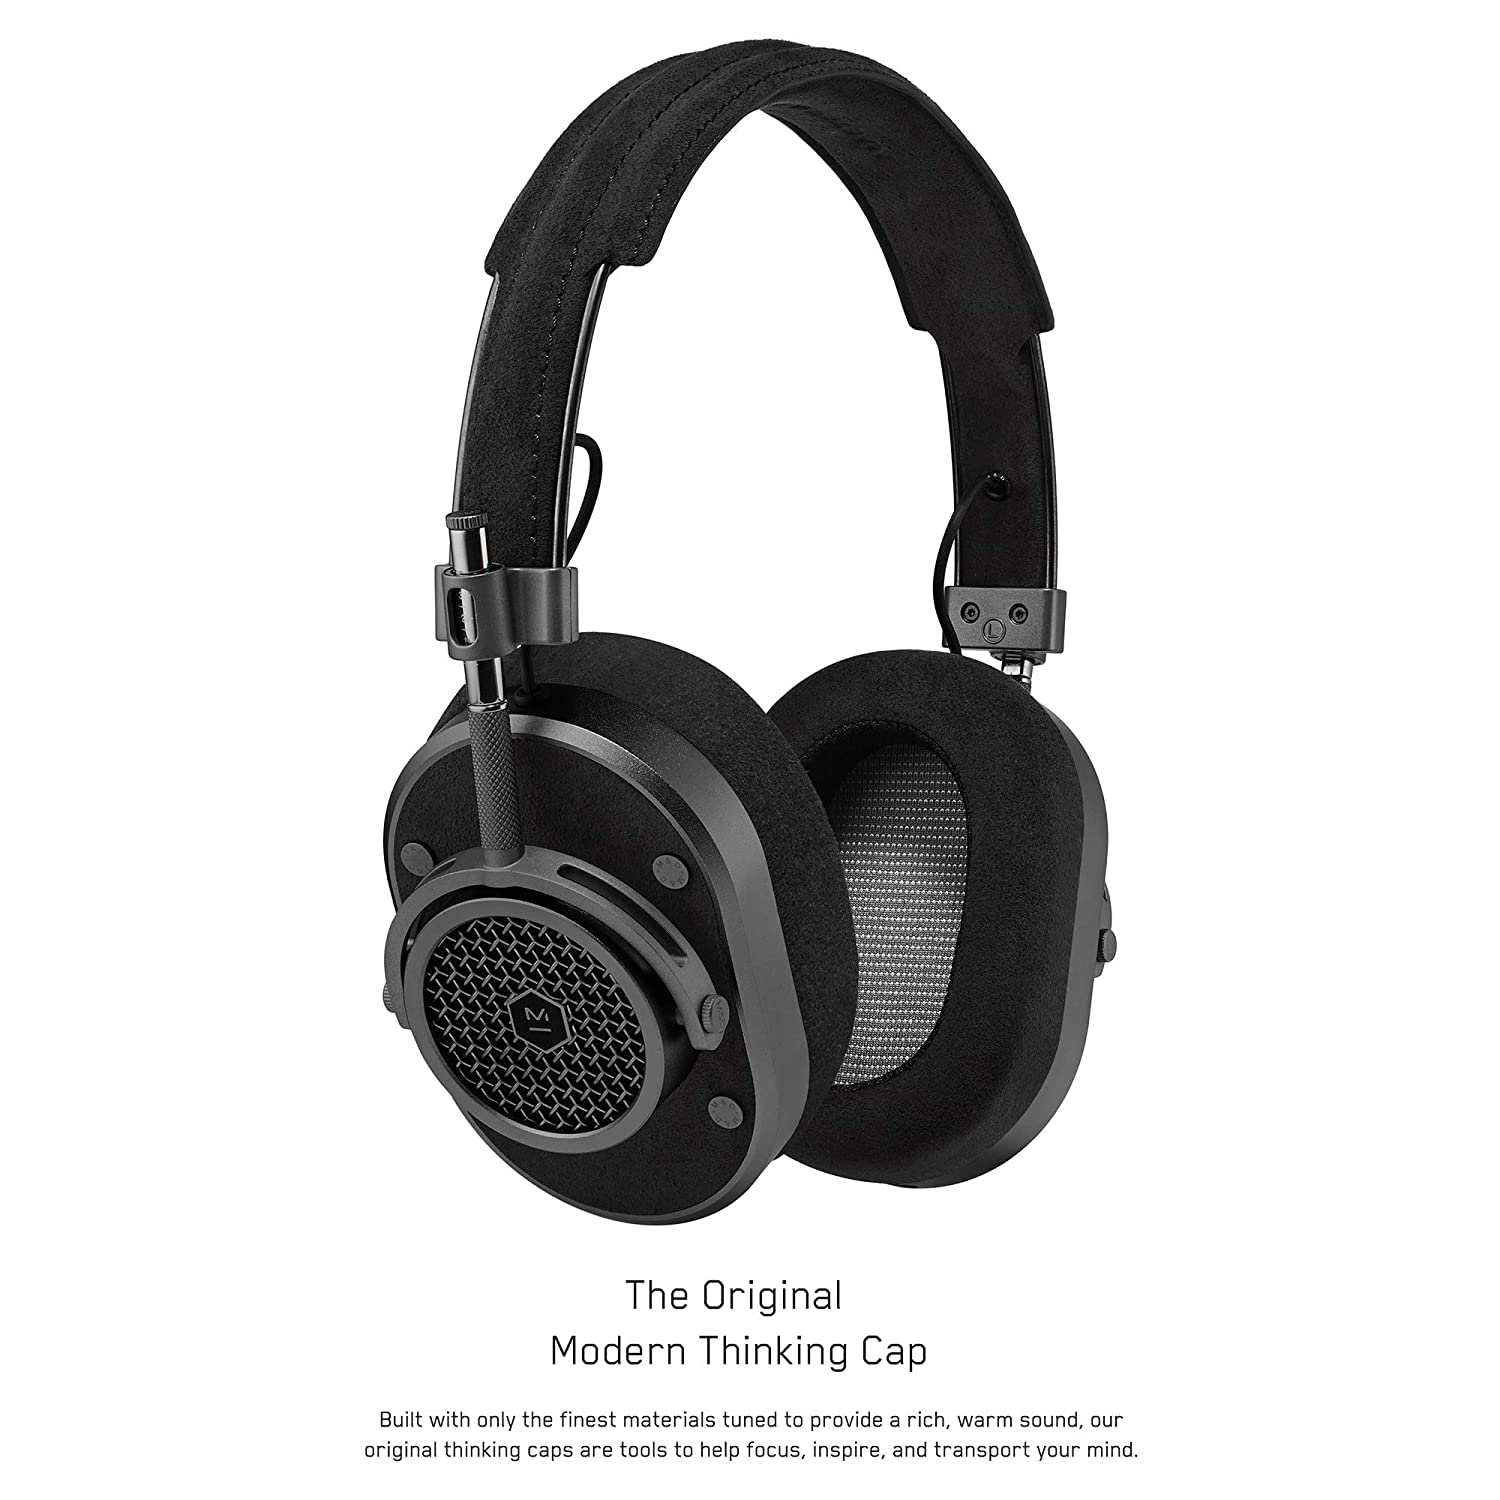 df9036b6d97 Amazon.com: Master & Dynamic Award Winning MH40 Over-Ear, Closed Back  Headphones with Superior Sound Quality and Highest Level of Design: Home &  Kitchen